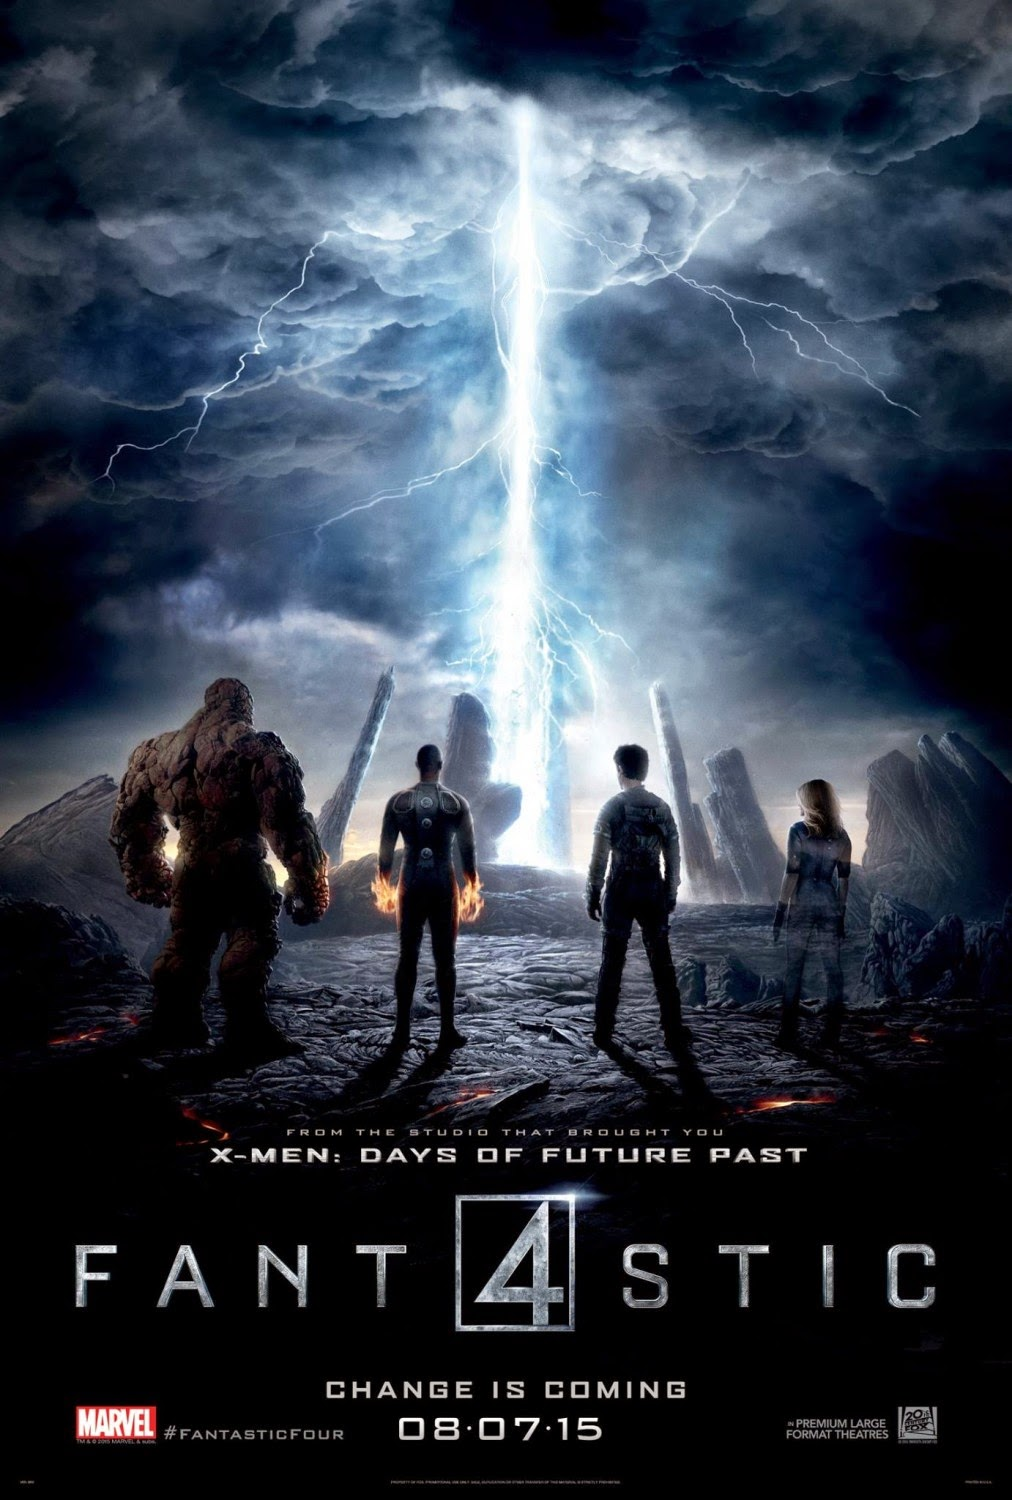 Fantastic Four 2nd Theatrical One Sheet Teaser Movie Poster